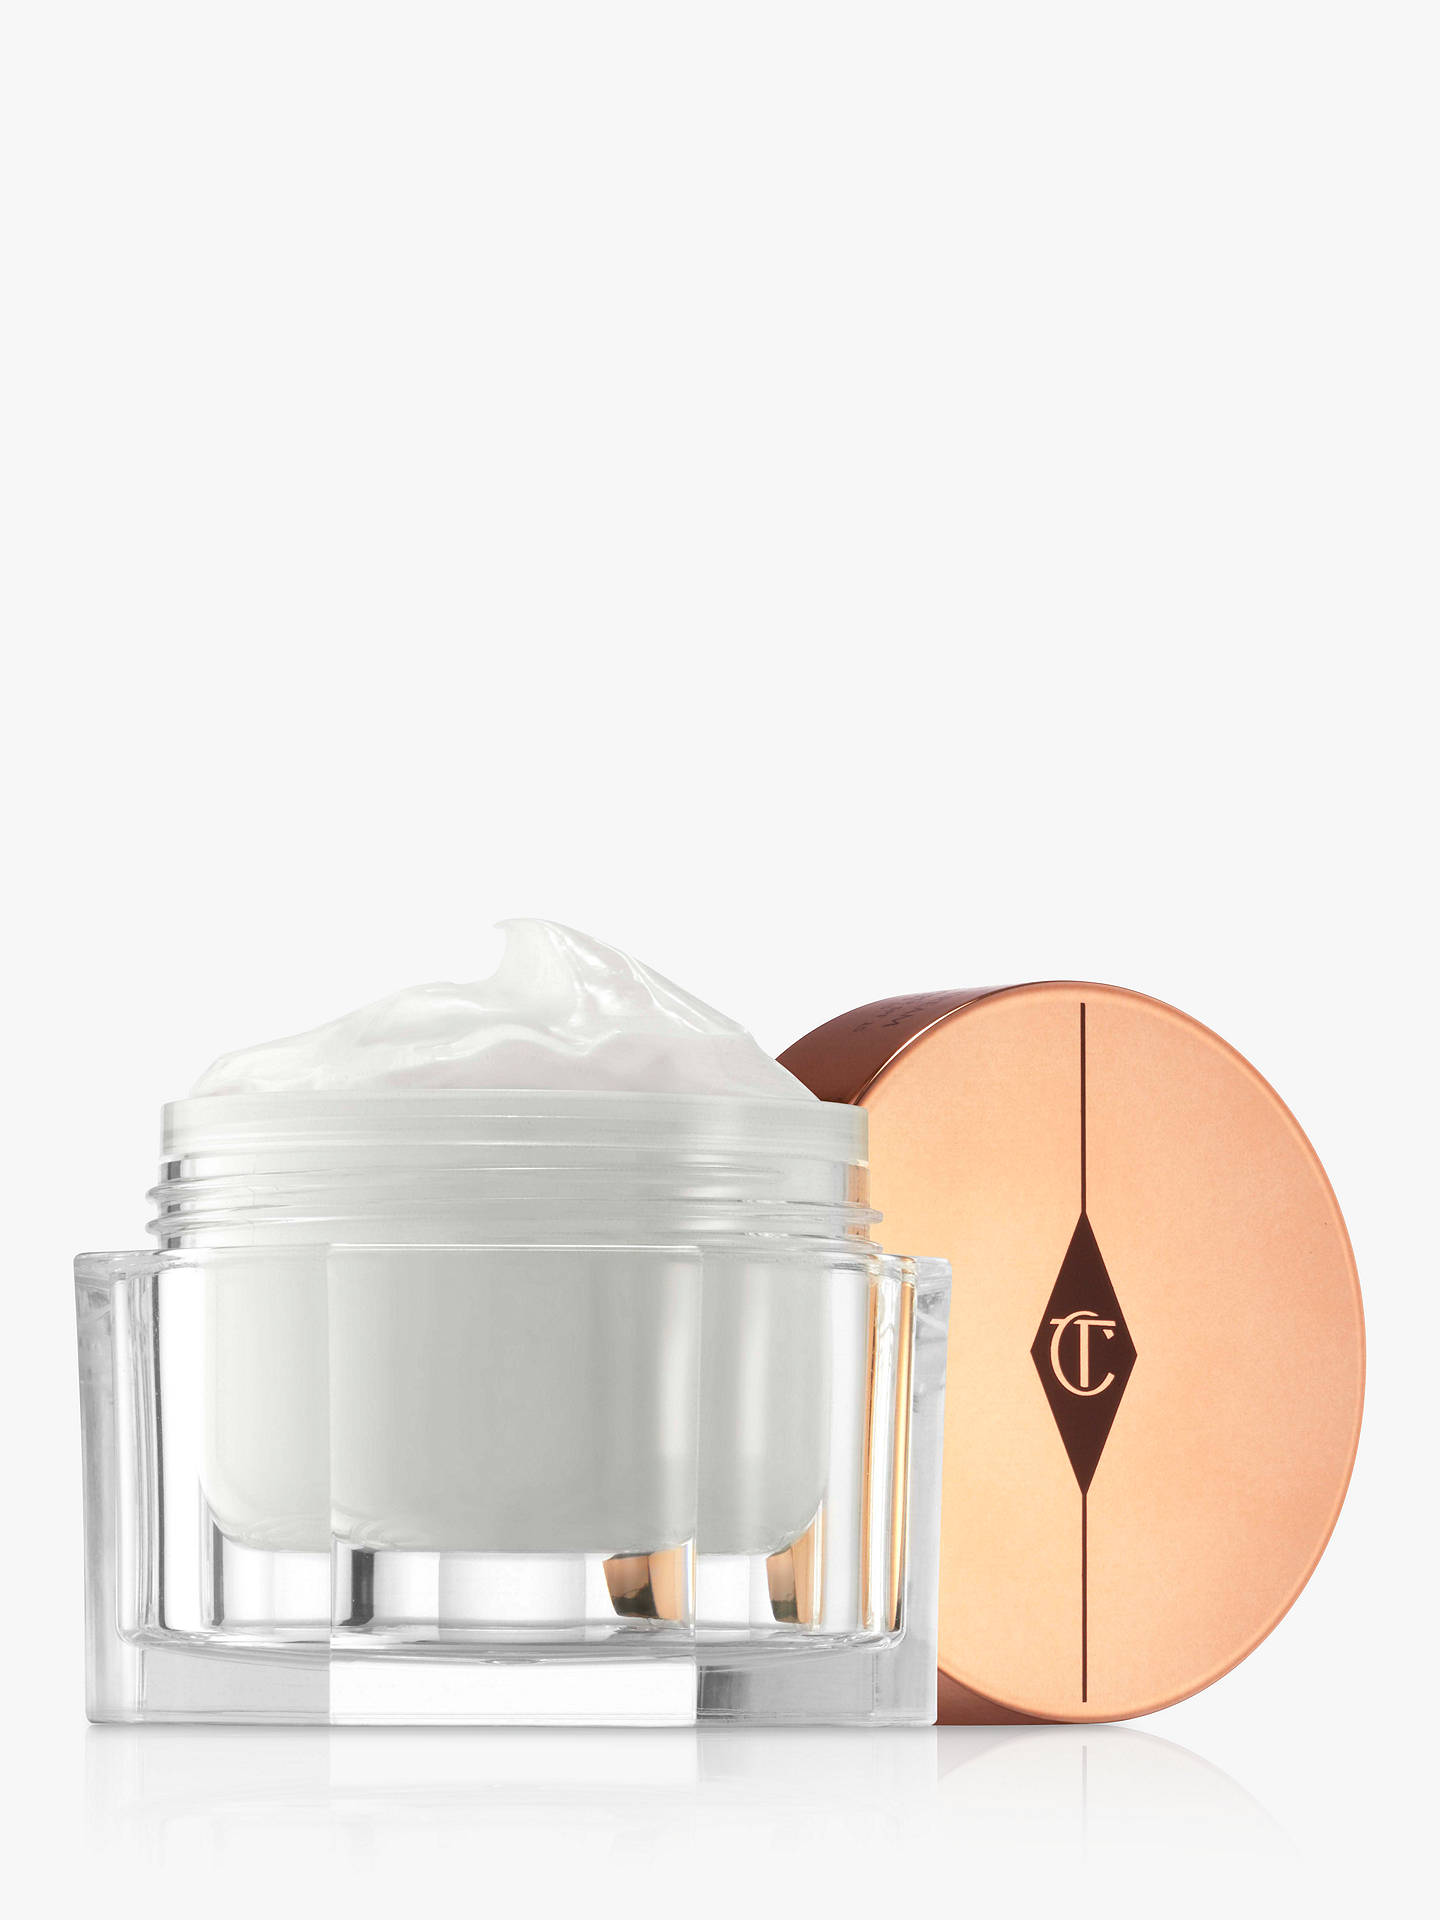 BuyCharlotte Tilbury Charlotte's Magic Cream Treat & Transform Moisturiser SPF15, 50ml Online at johnlewis.com